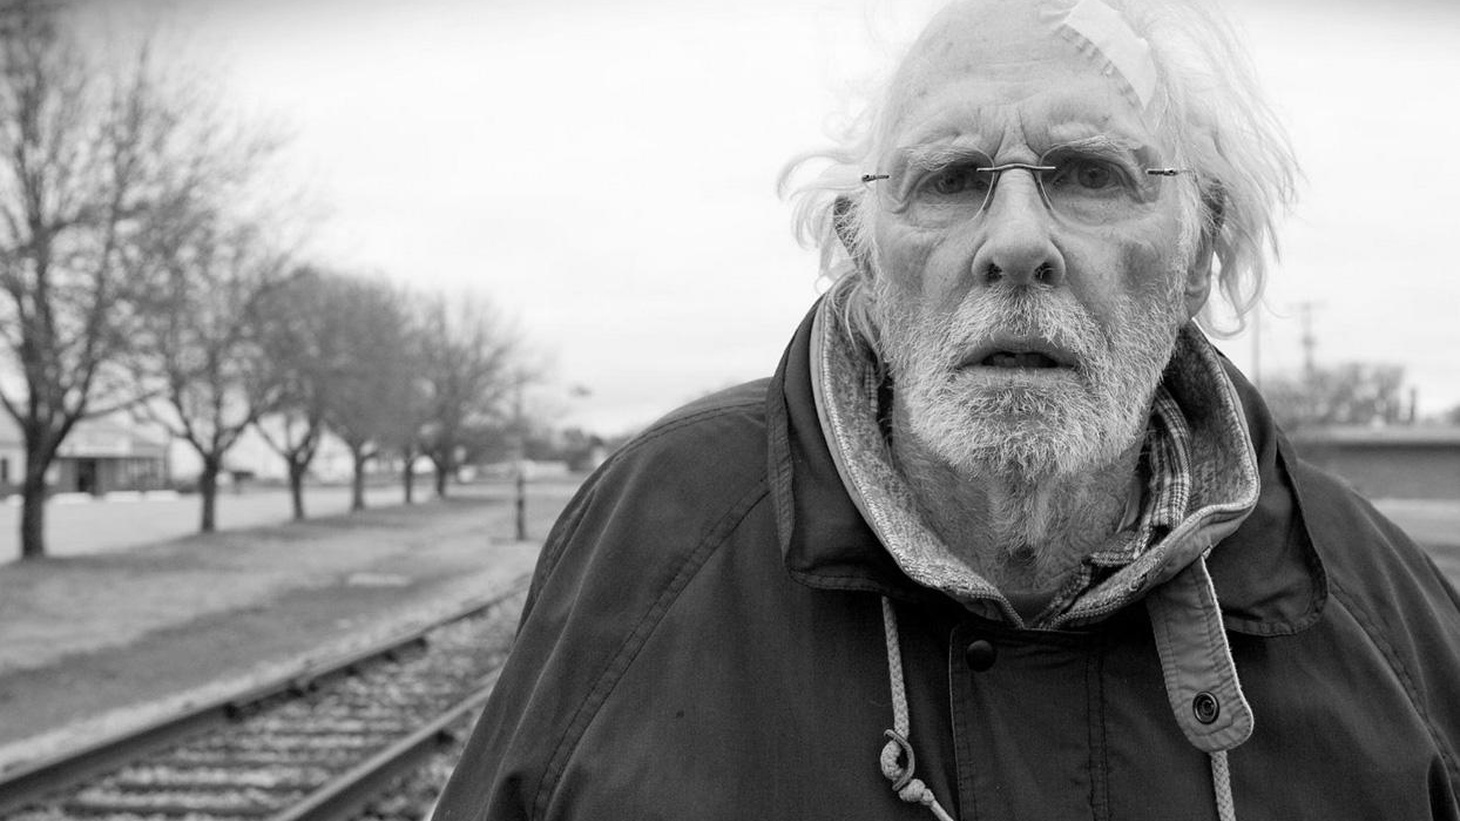 Nebraska,a classic road movie, is remarkable for its kindness and generosity…